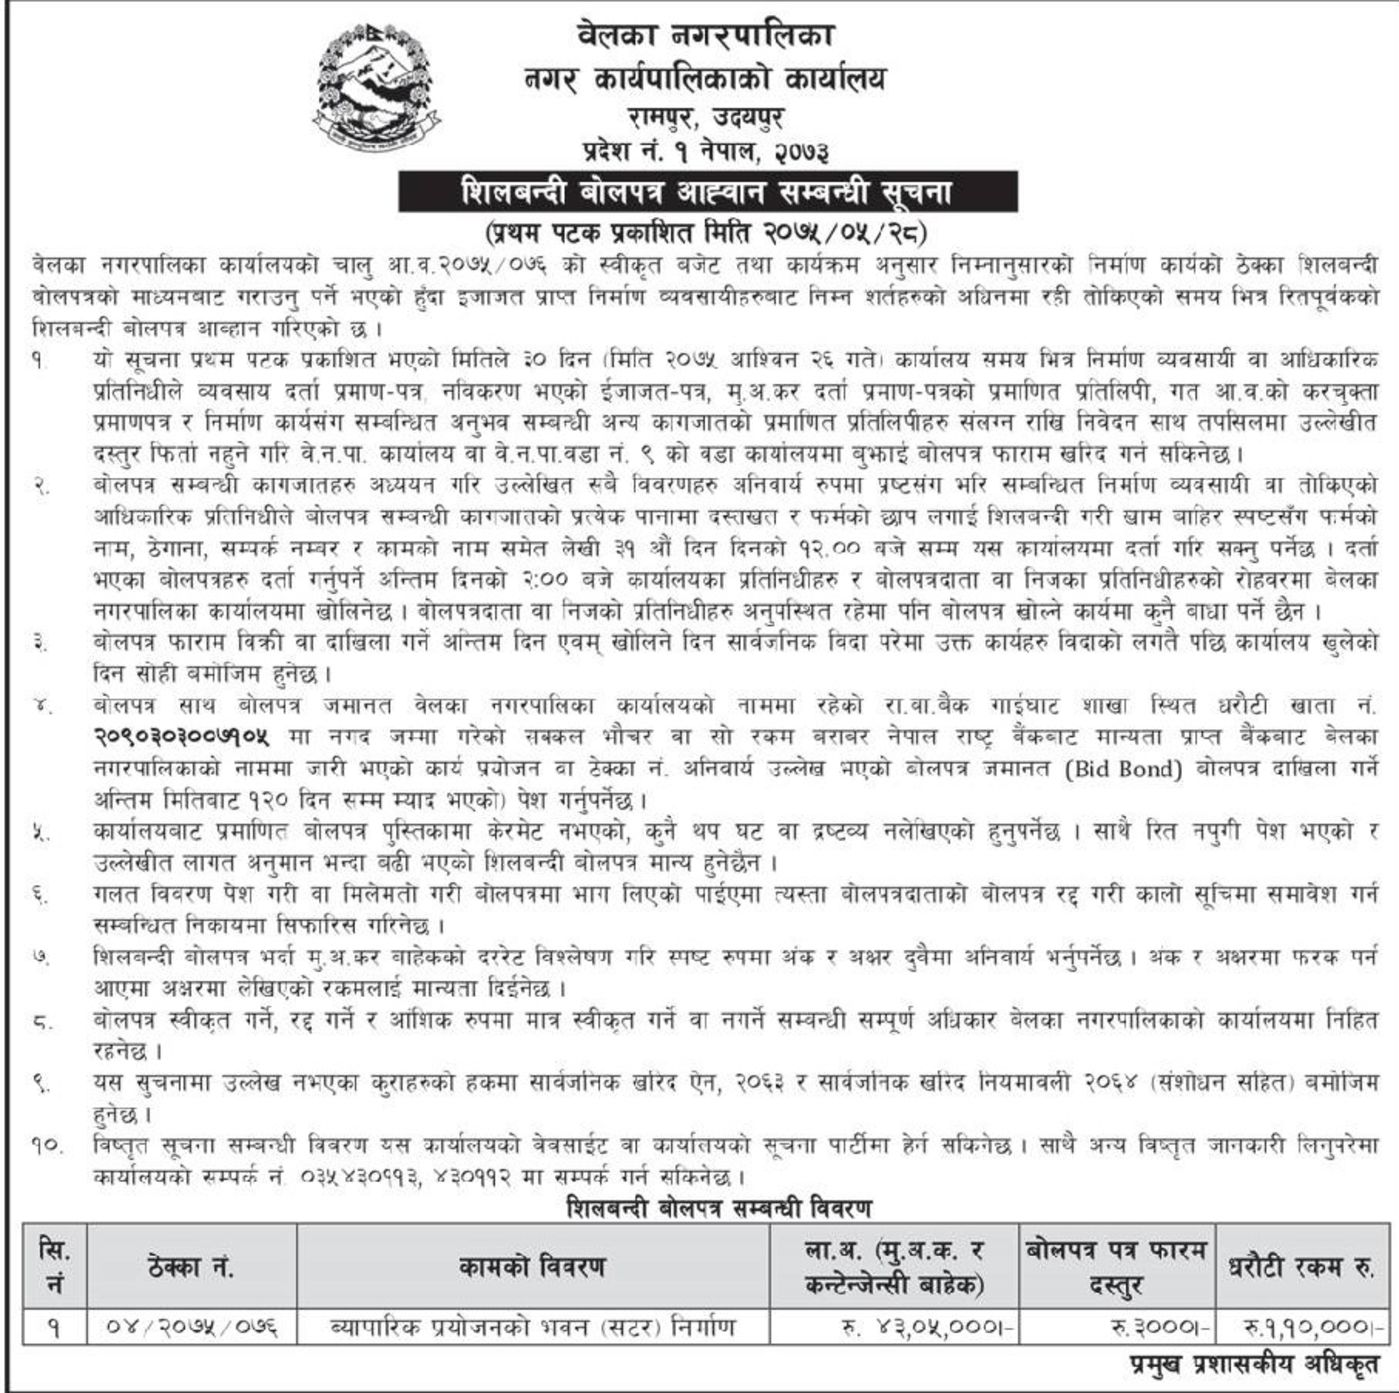 Bids and Tenders Nepal - Tender - Building Construction